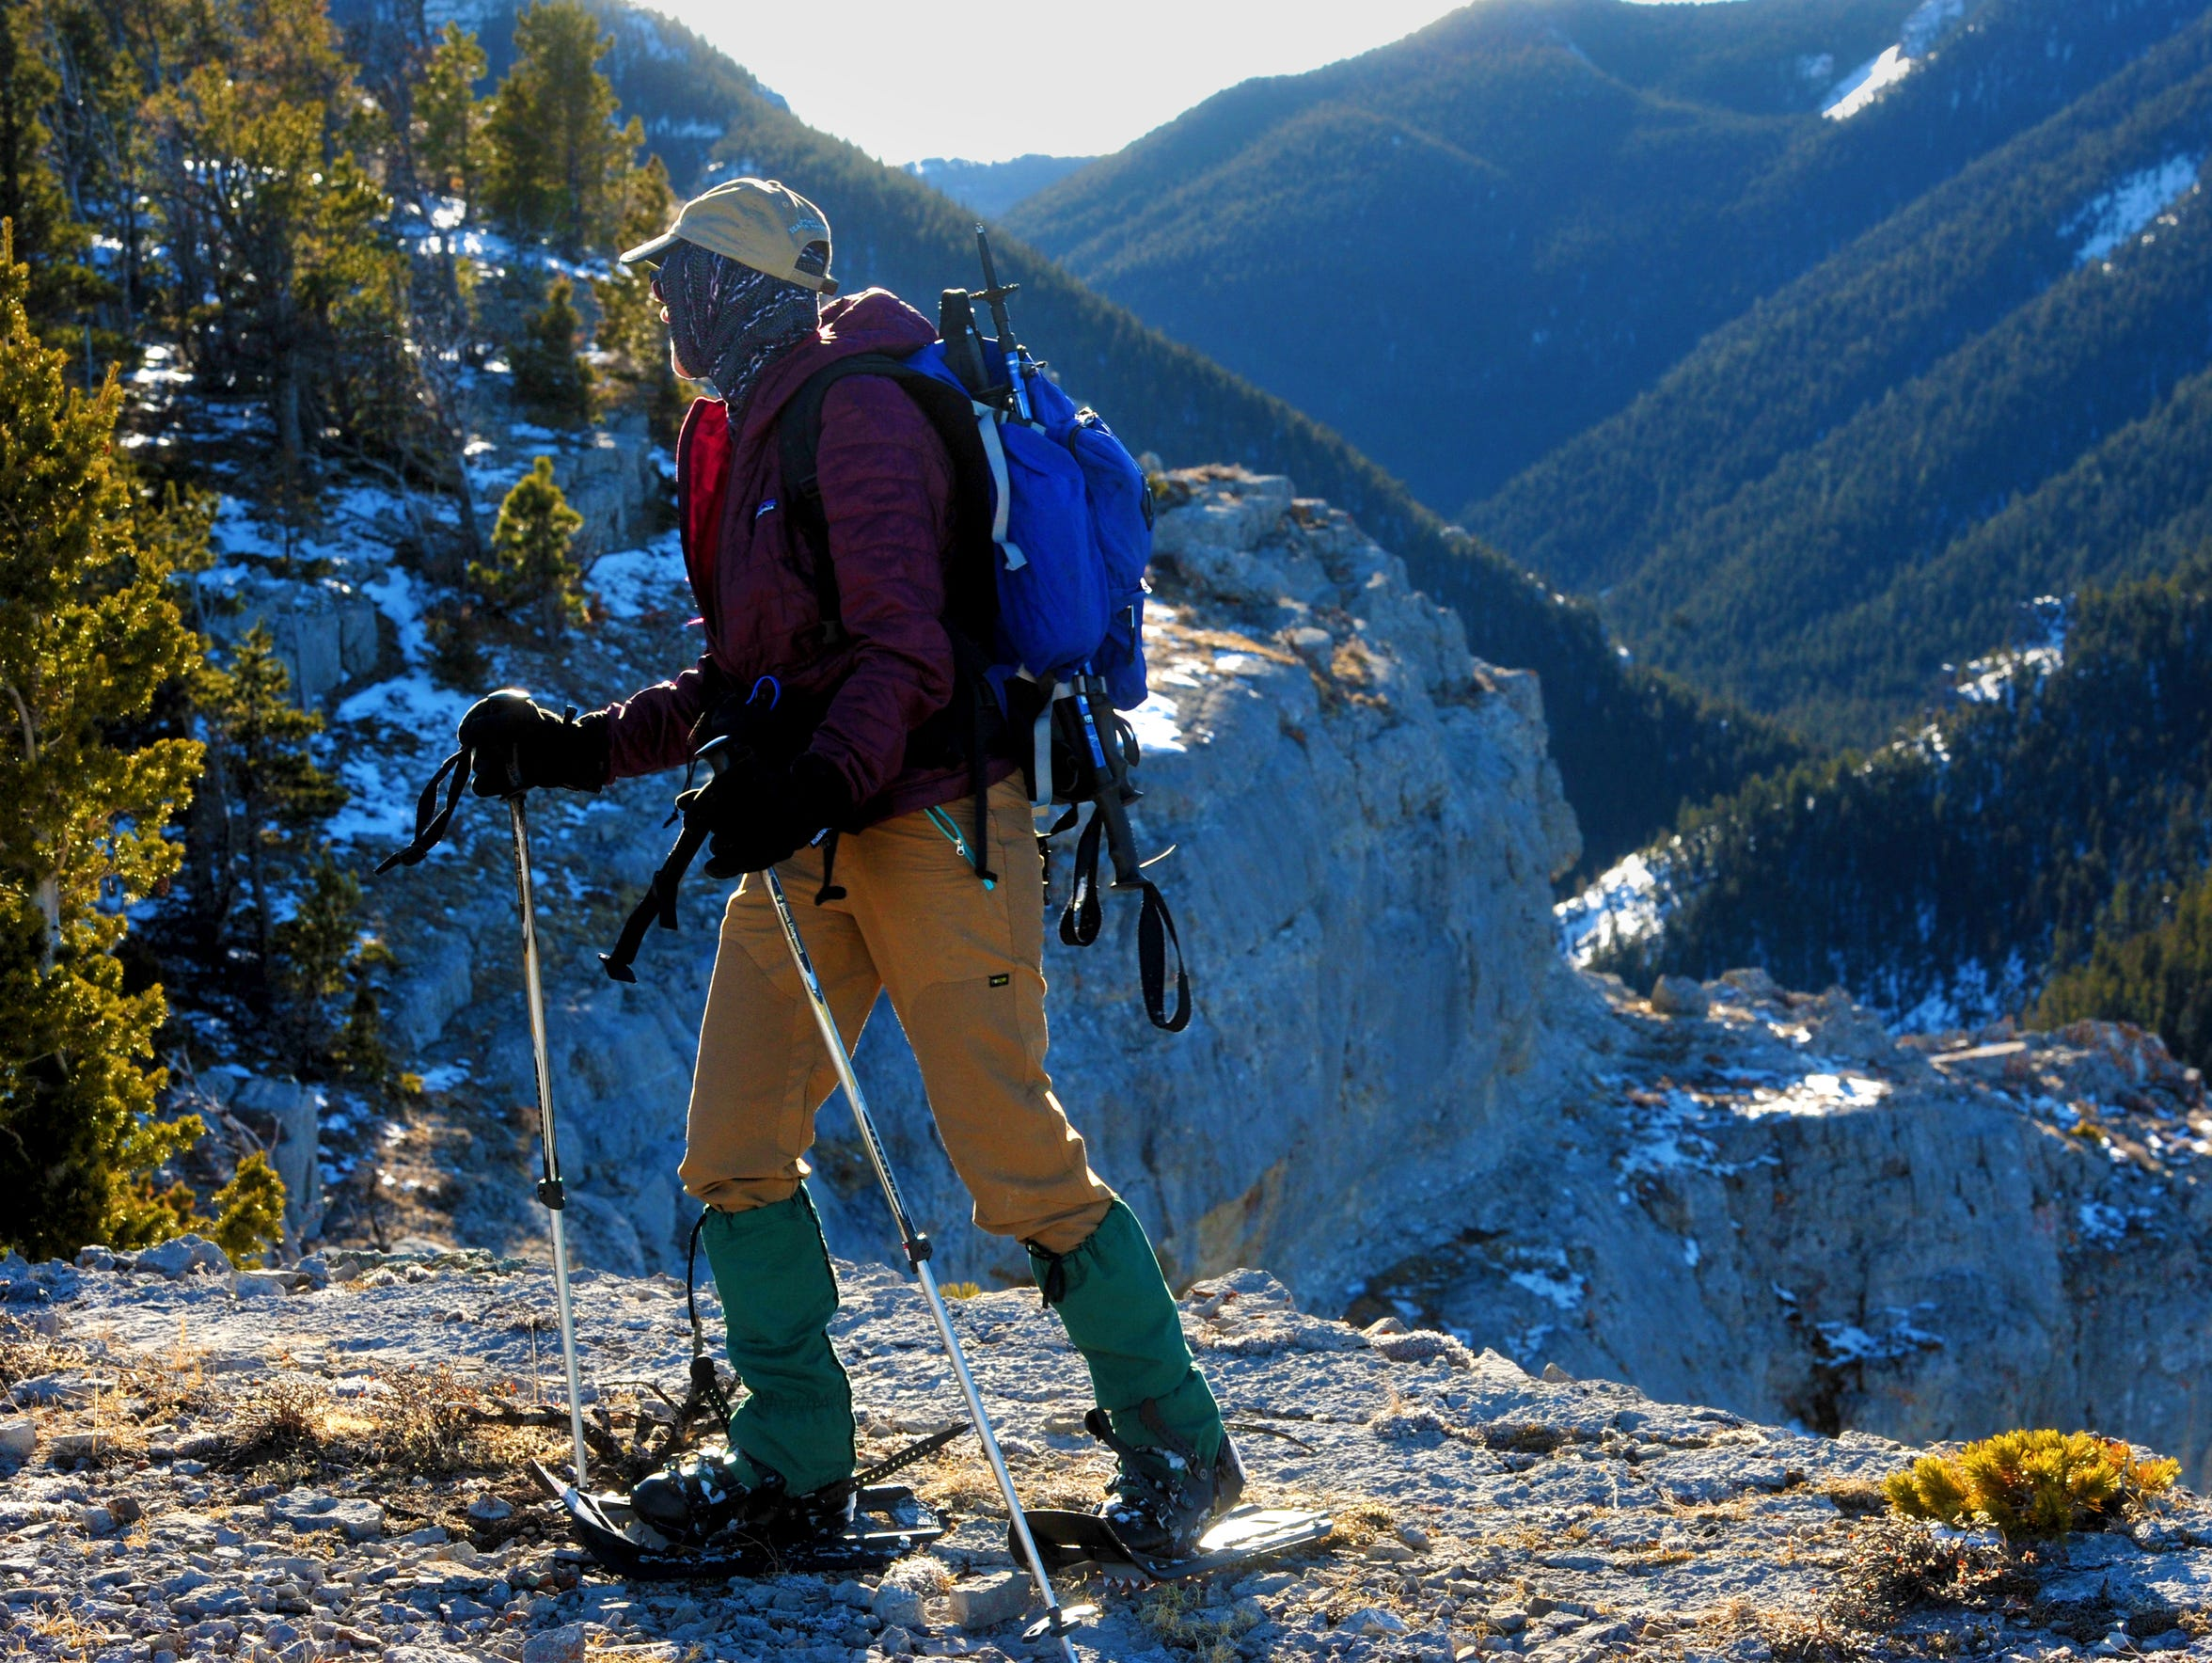 Laurie Lohrer of Lewistown walks along south-facing cliff absent of snow while on a snowshoeing hike in the Big Snowy Mountains Wilderness Study Area in the Lewis and Clark National Forest near Lewistown recently.